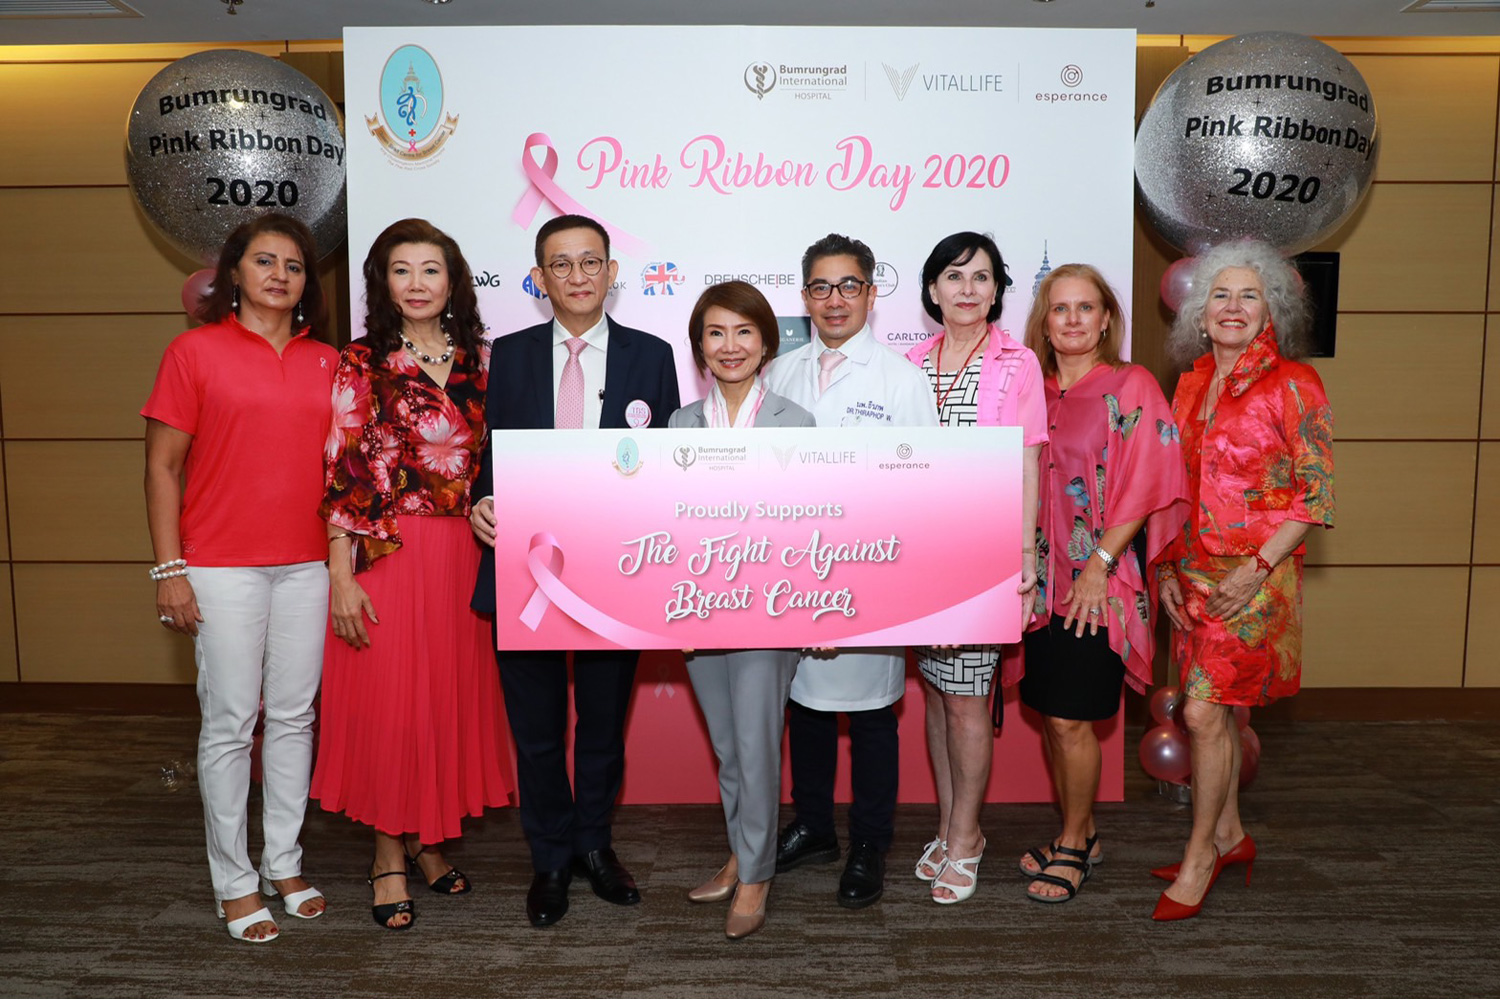 PINK RIBBON DAY: In recognition of October as an International Breast Cancer Awareness month